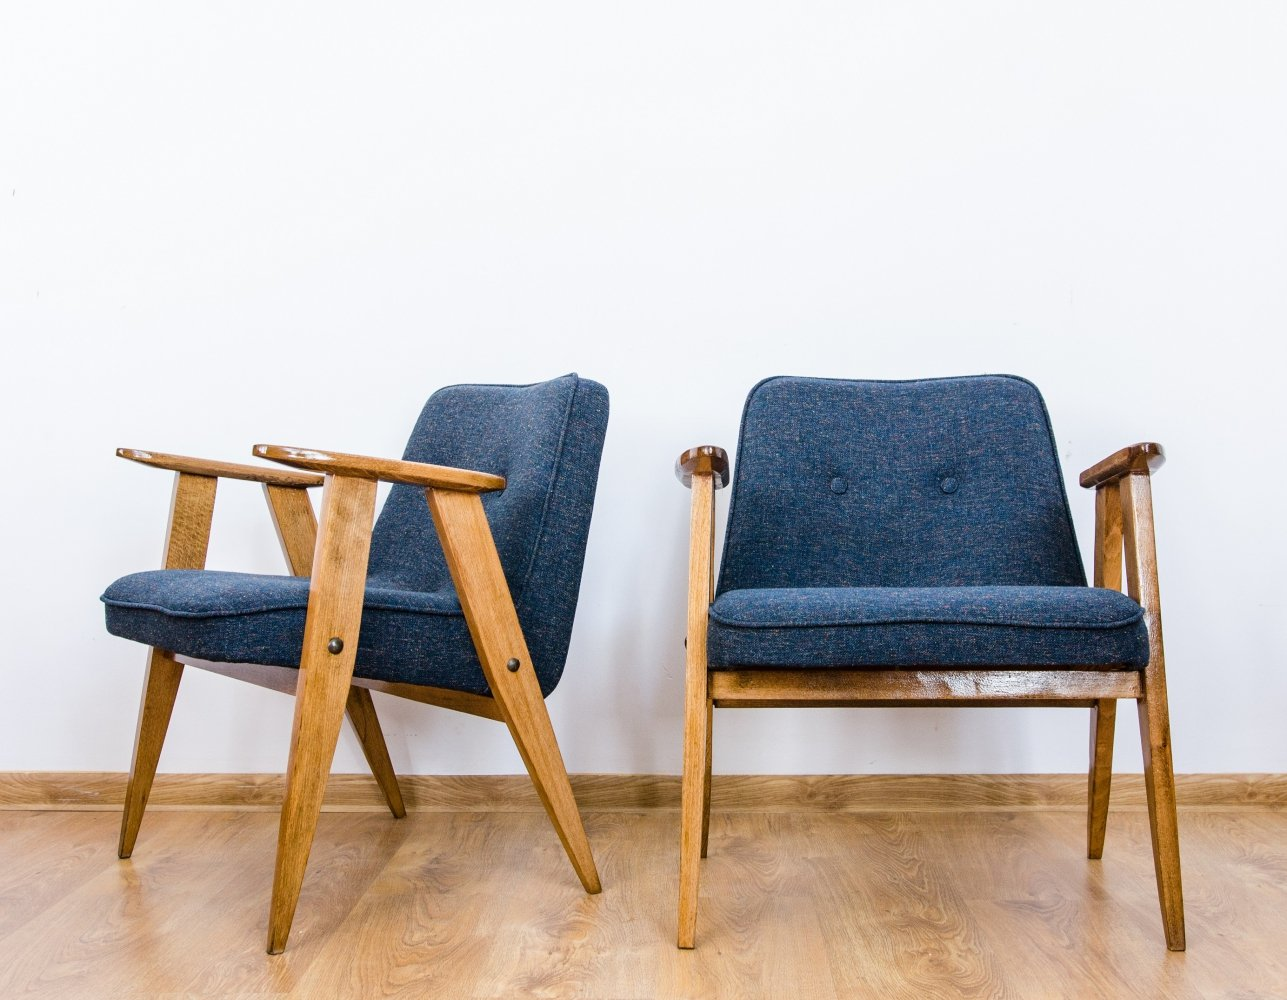 Pair of model 366 arm chairs by Jozef Marian Chierowski, 1960s